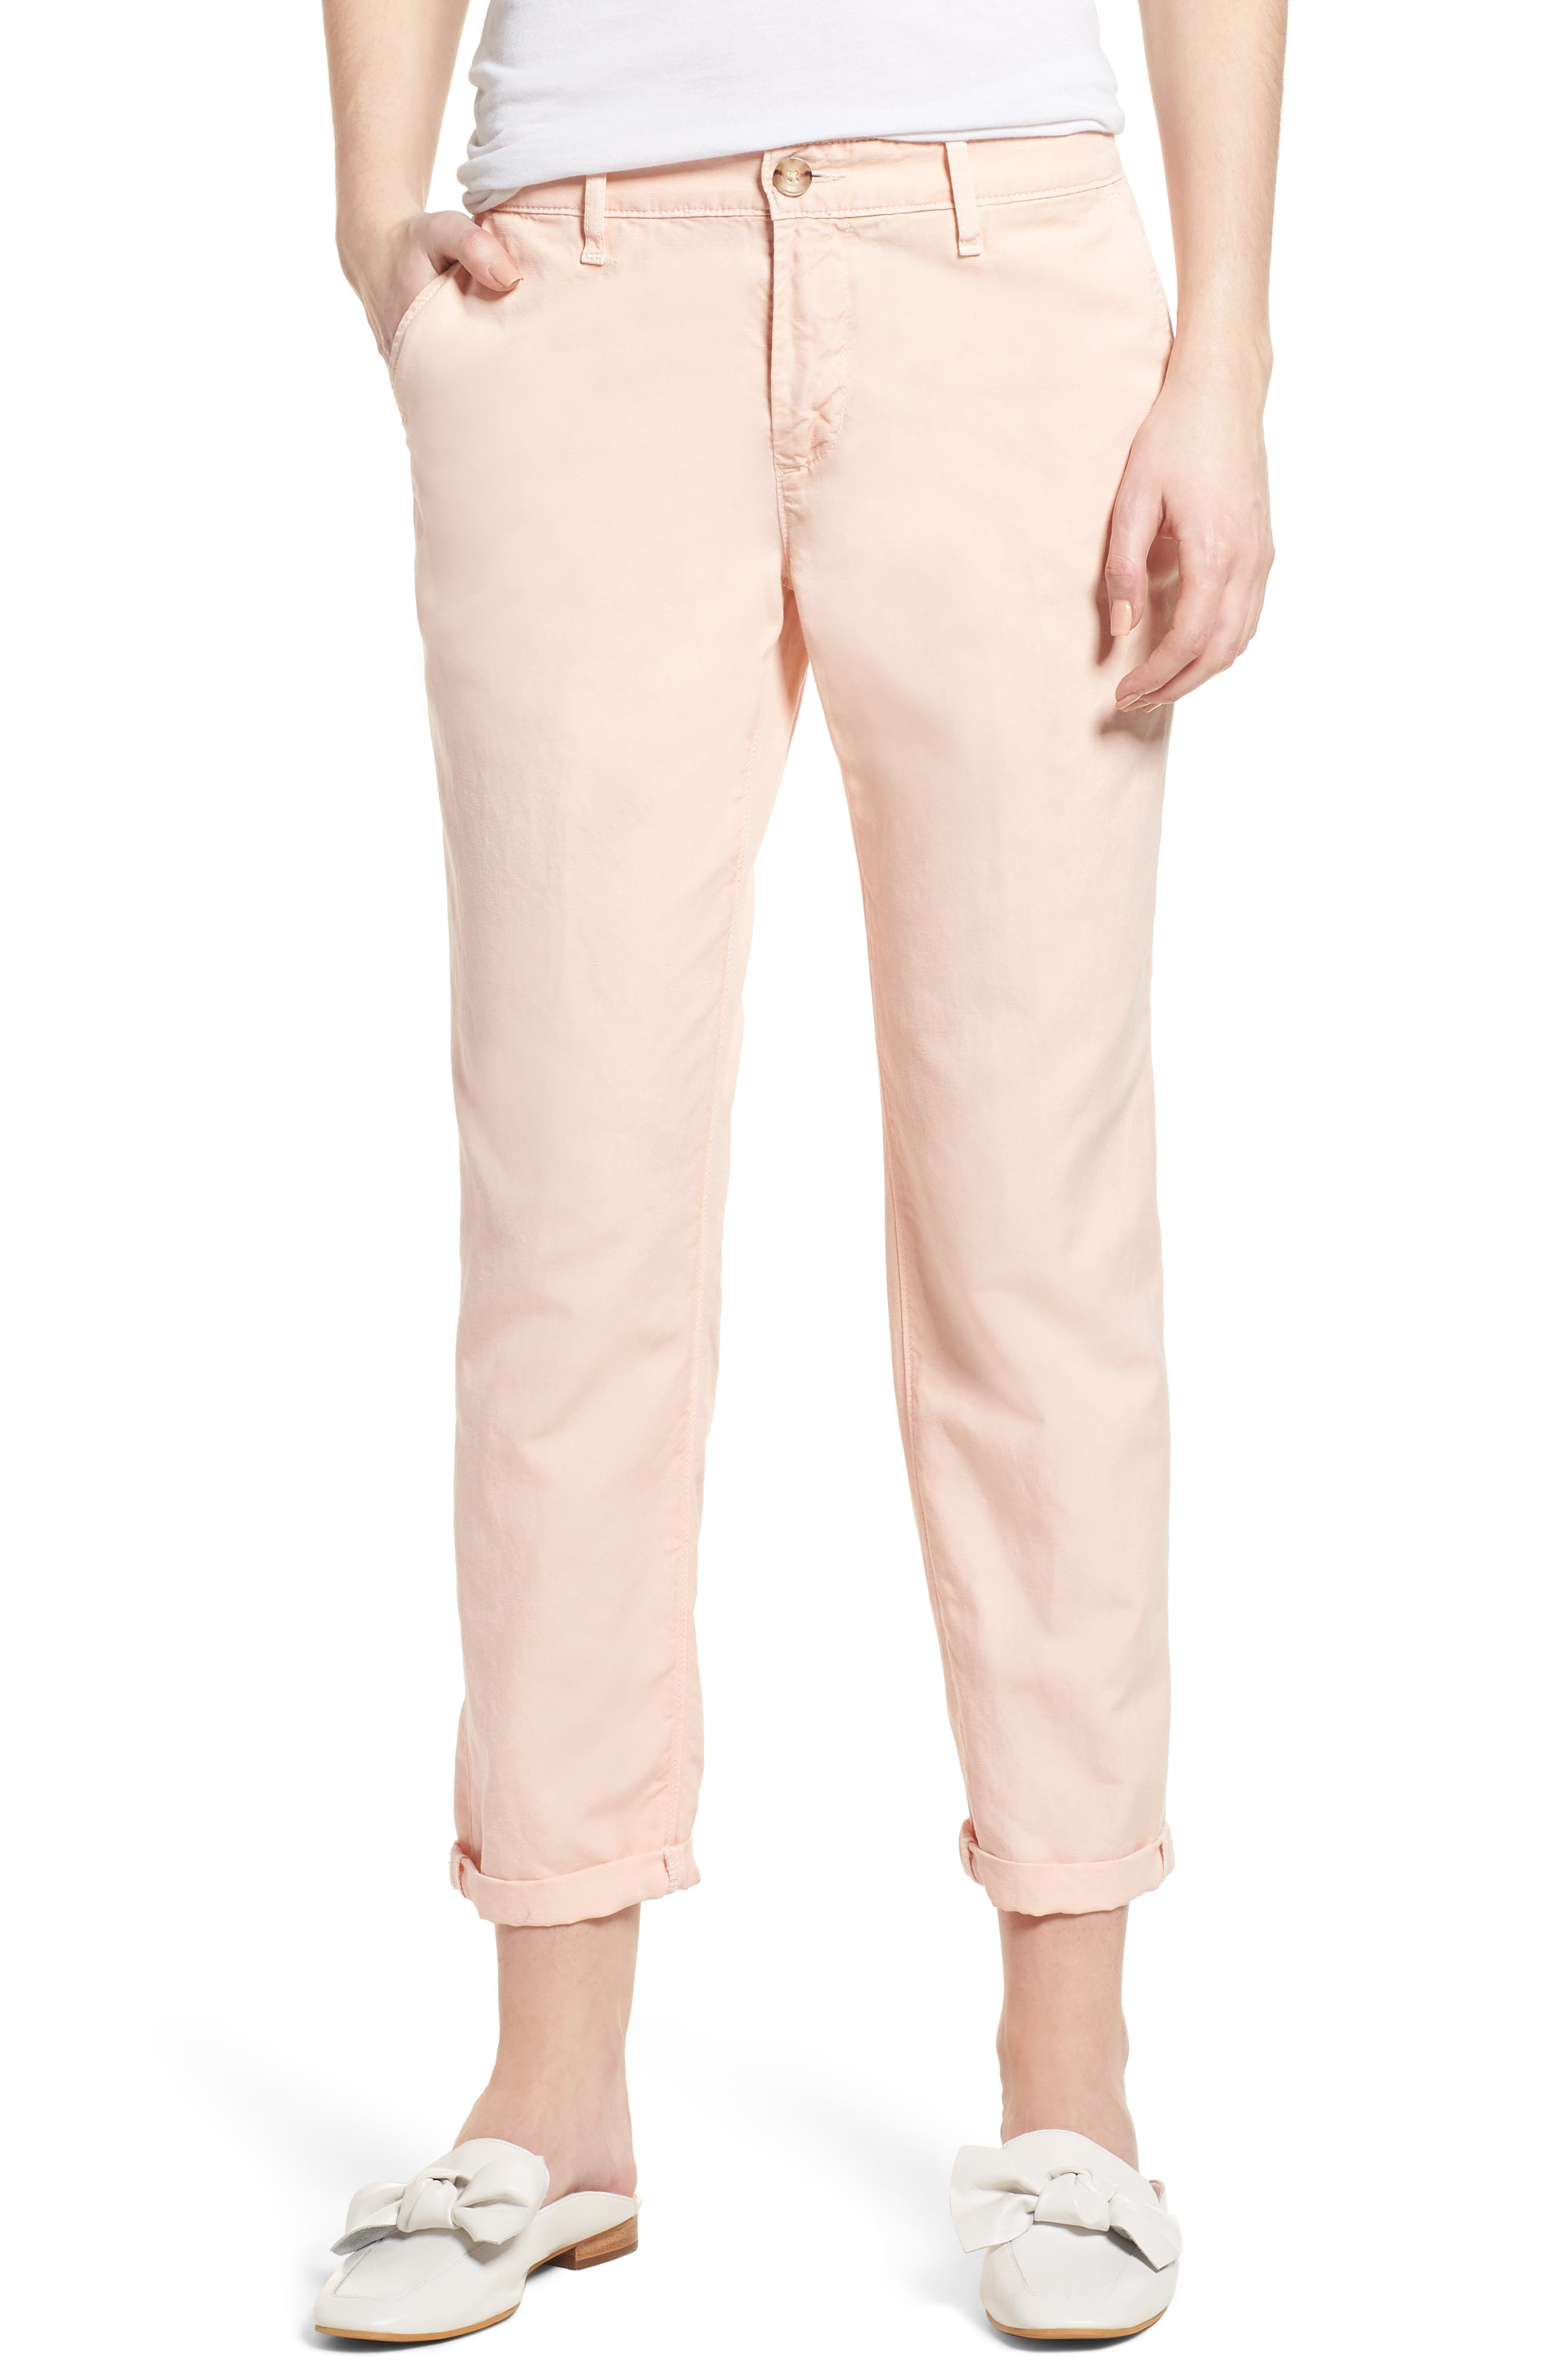 Caden Crop Twill Trousers,                             Main thumbnail 1, color,                             Sulfur Prism Pink